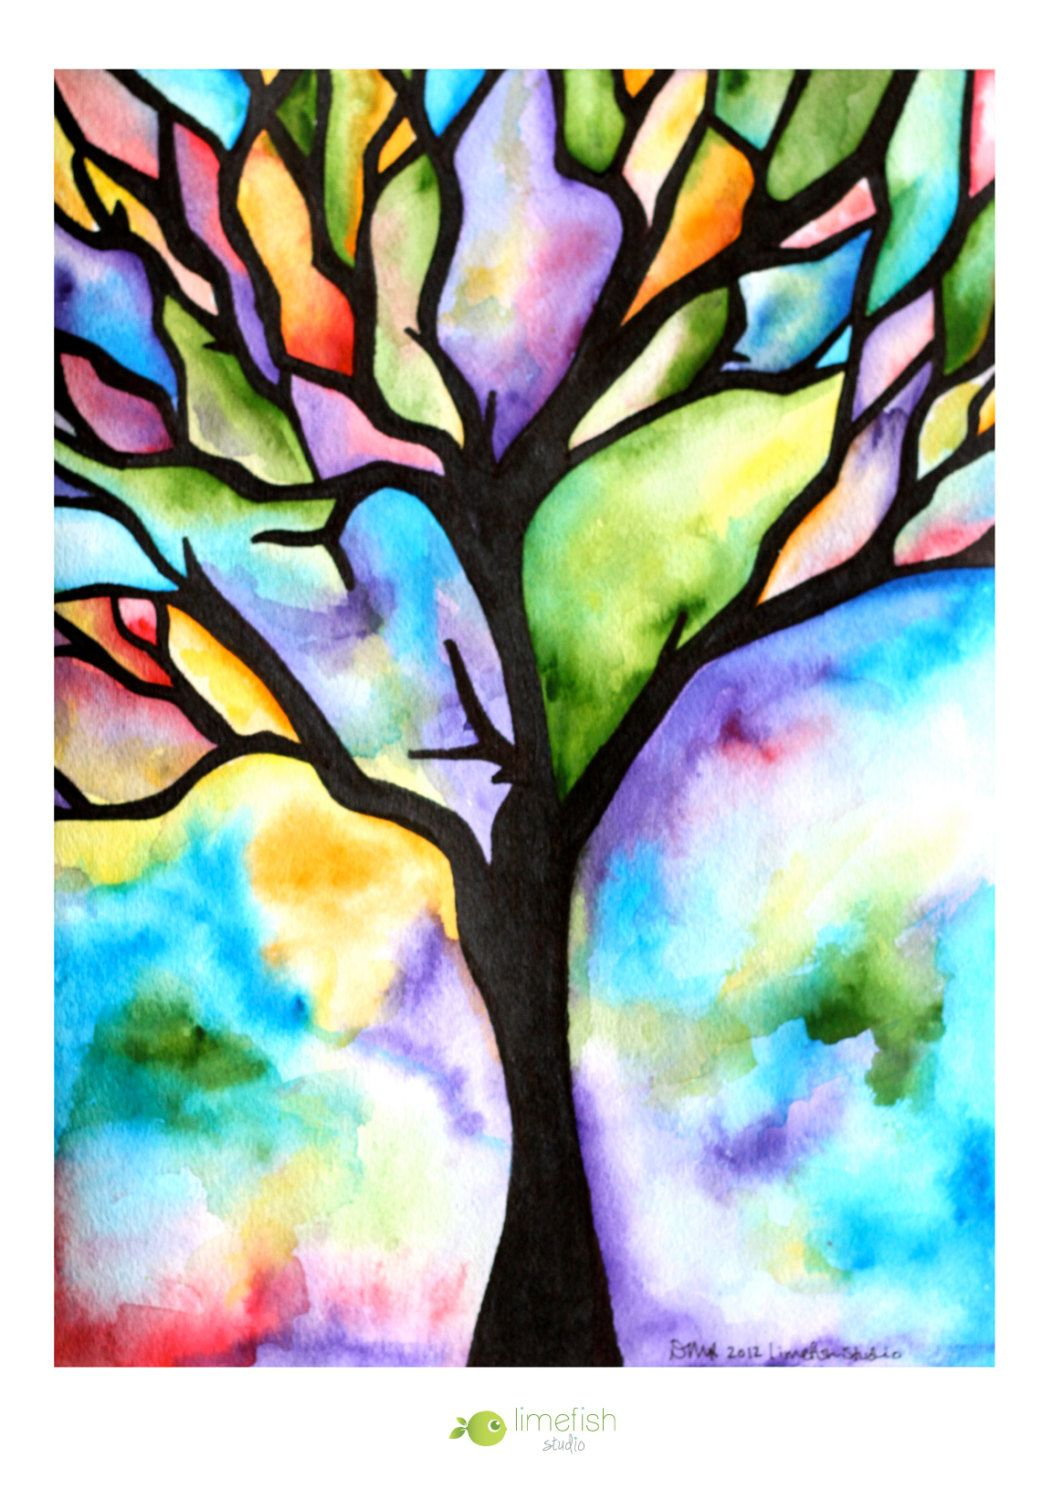 5 Amazing Watercolor Painting Ideas For Kids Watercolor Paintings For Beginners Original Watercolor Painting Watercolor Paintings Easy